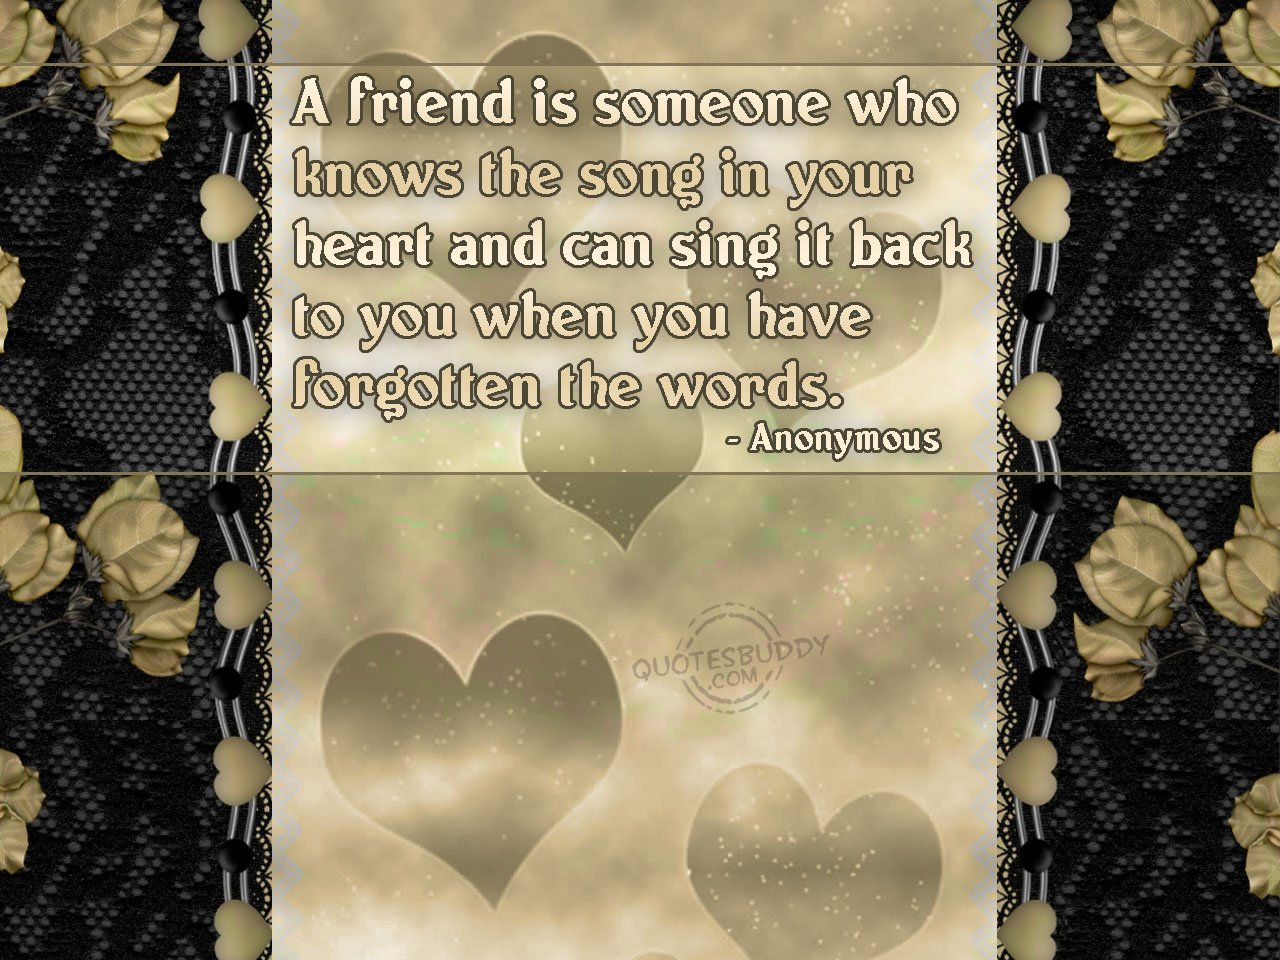 Best Friend Graphic Quotes Wallpapers 1280x960 pixel Quote HD 1280x960